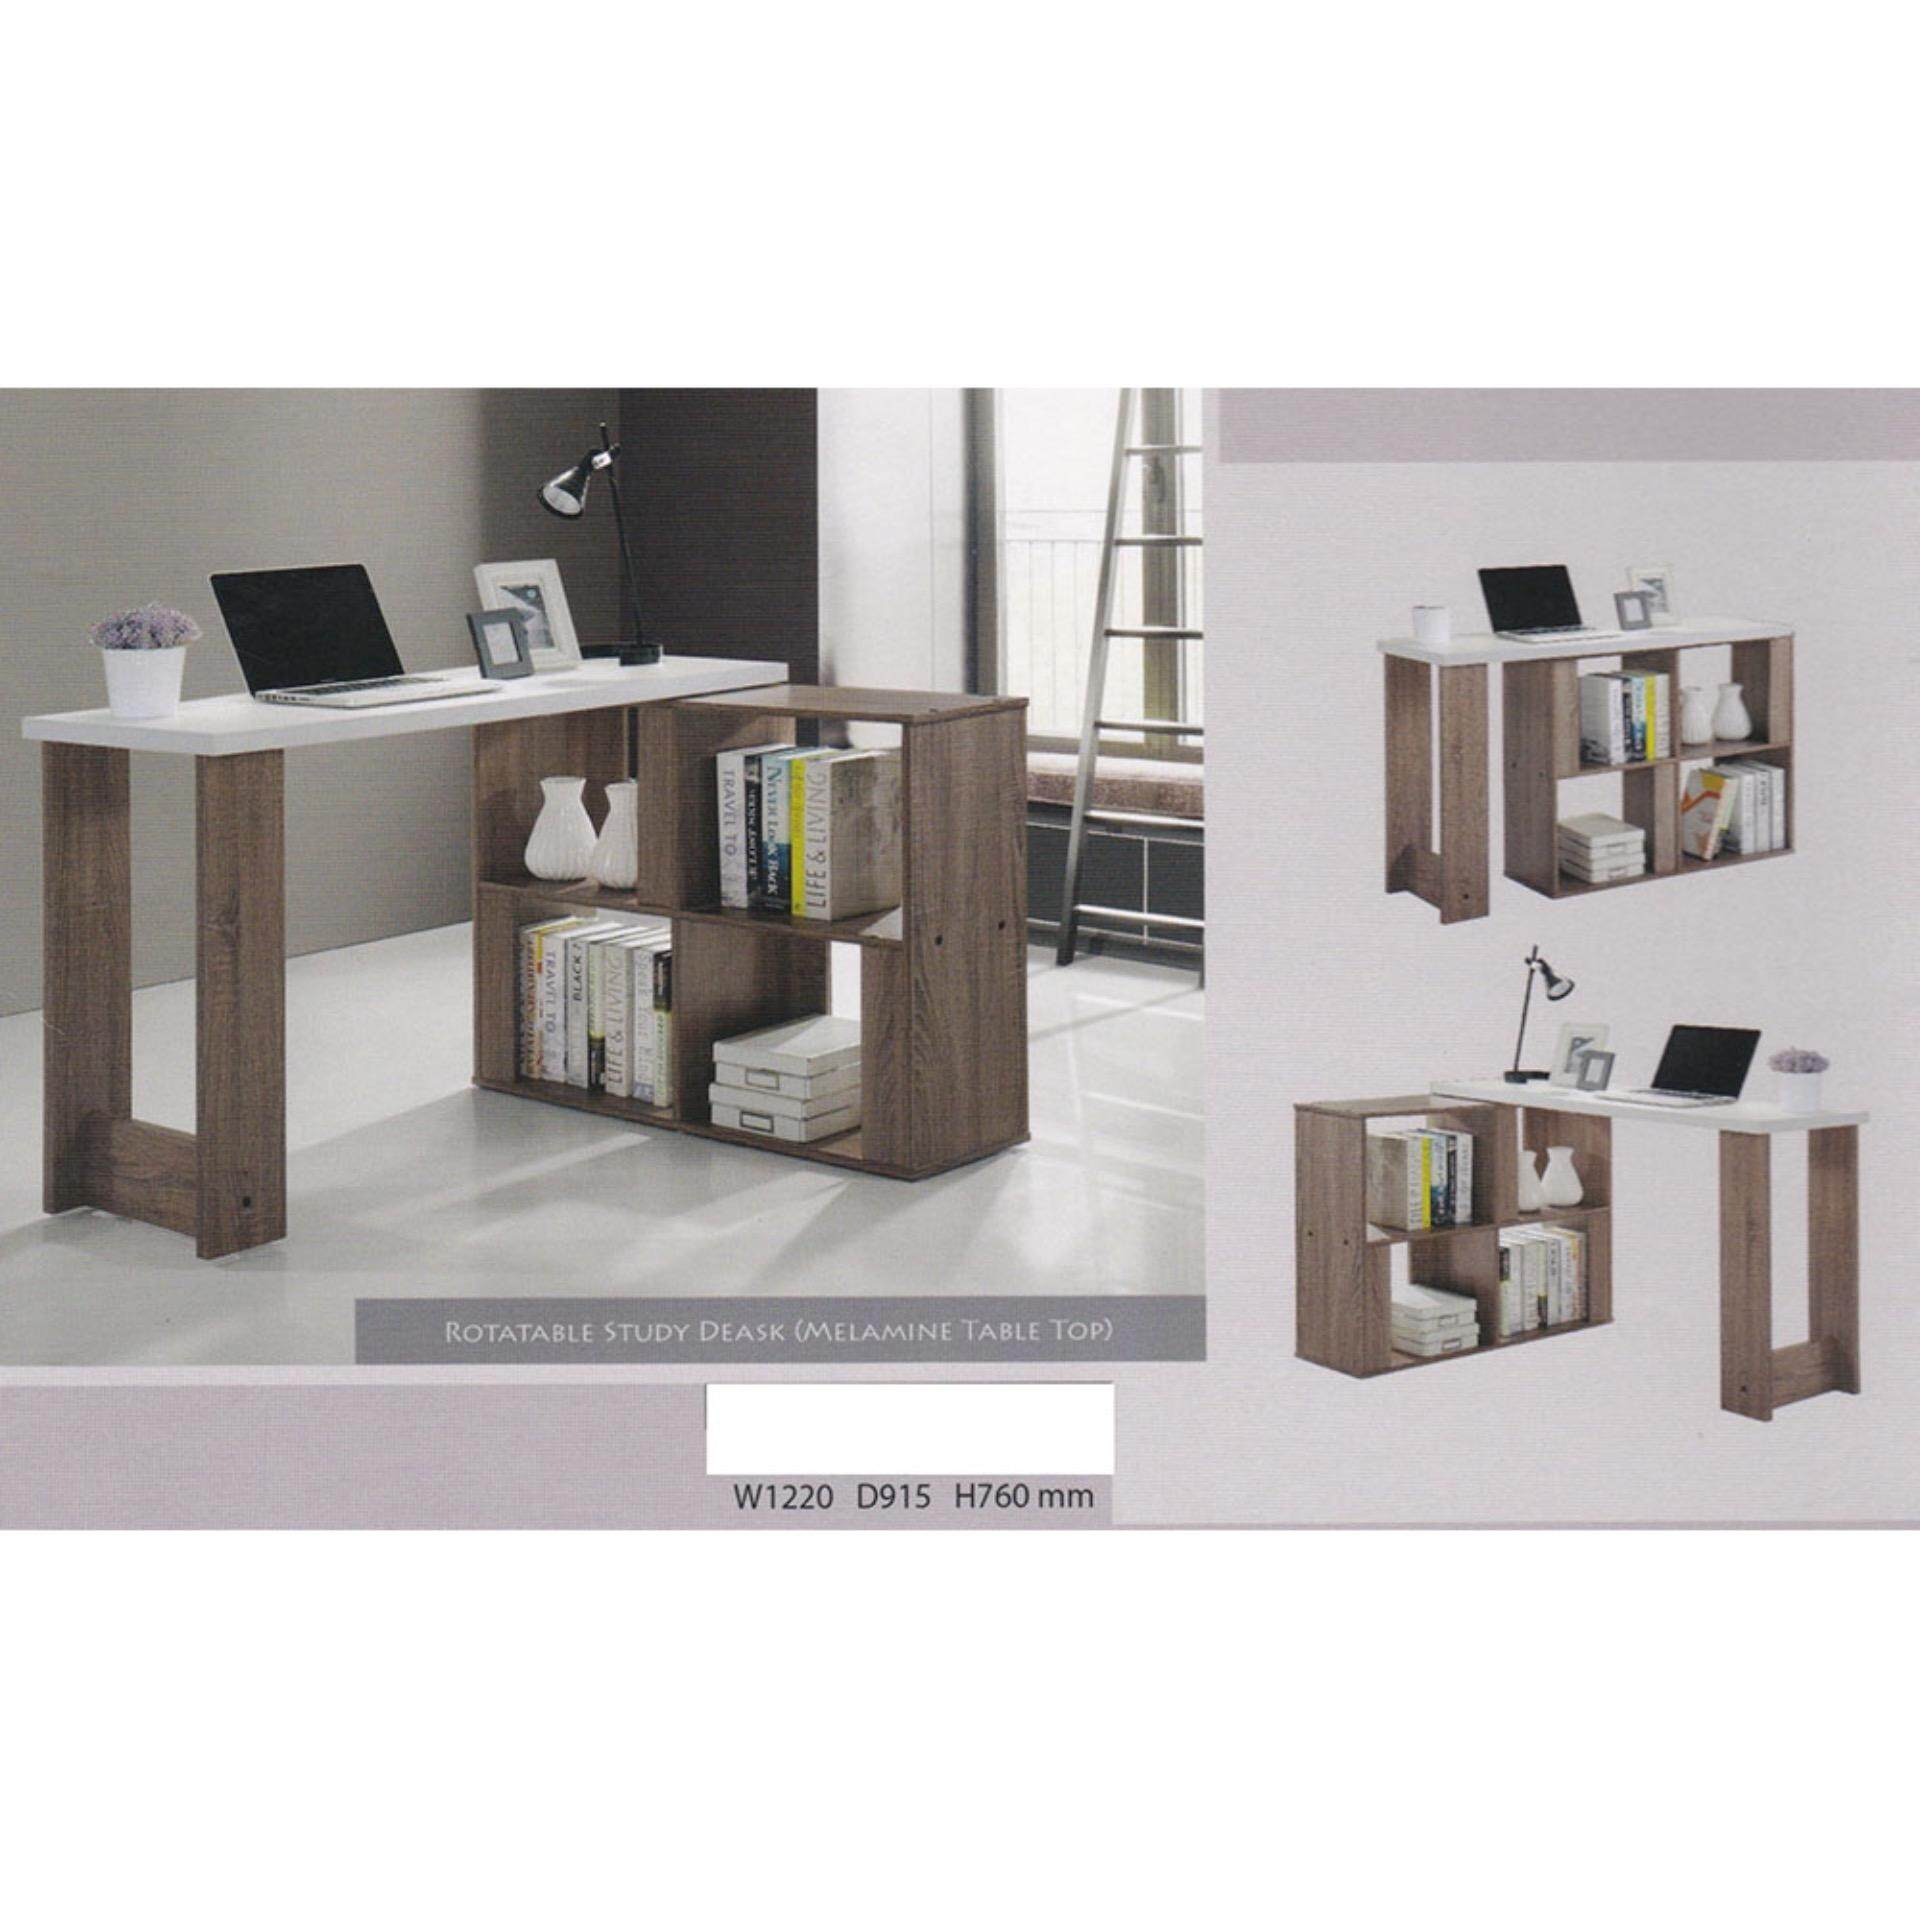 4 Feet Writing Desk/Office Table System/Study Table Office Cabinet  Pre Order 2 Week L1220MM X D915MM X H760MM (Brown Colour)